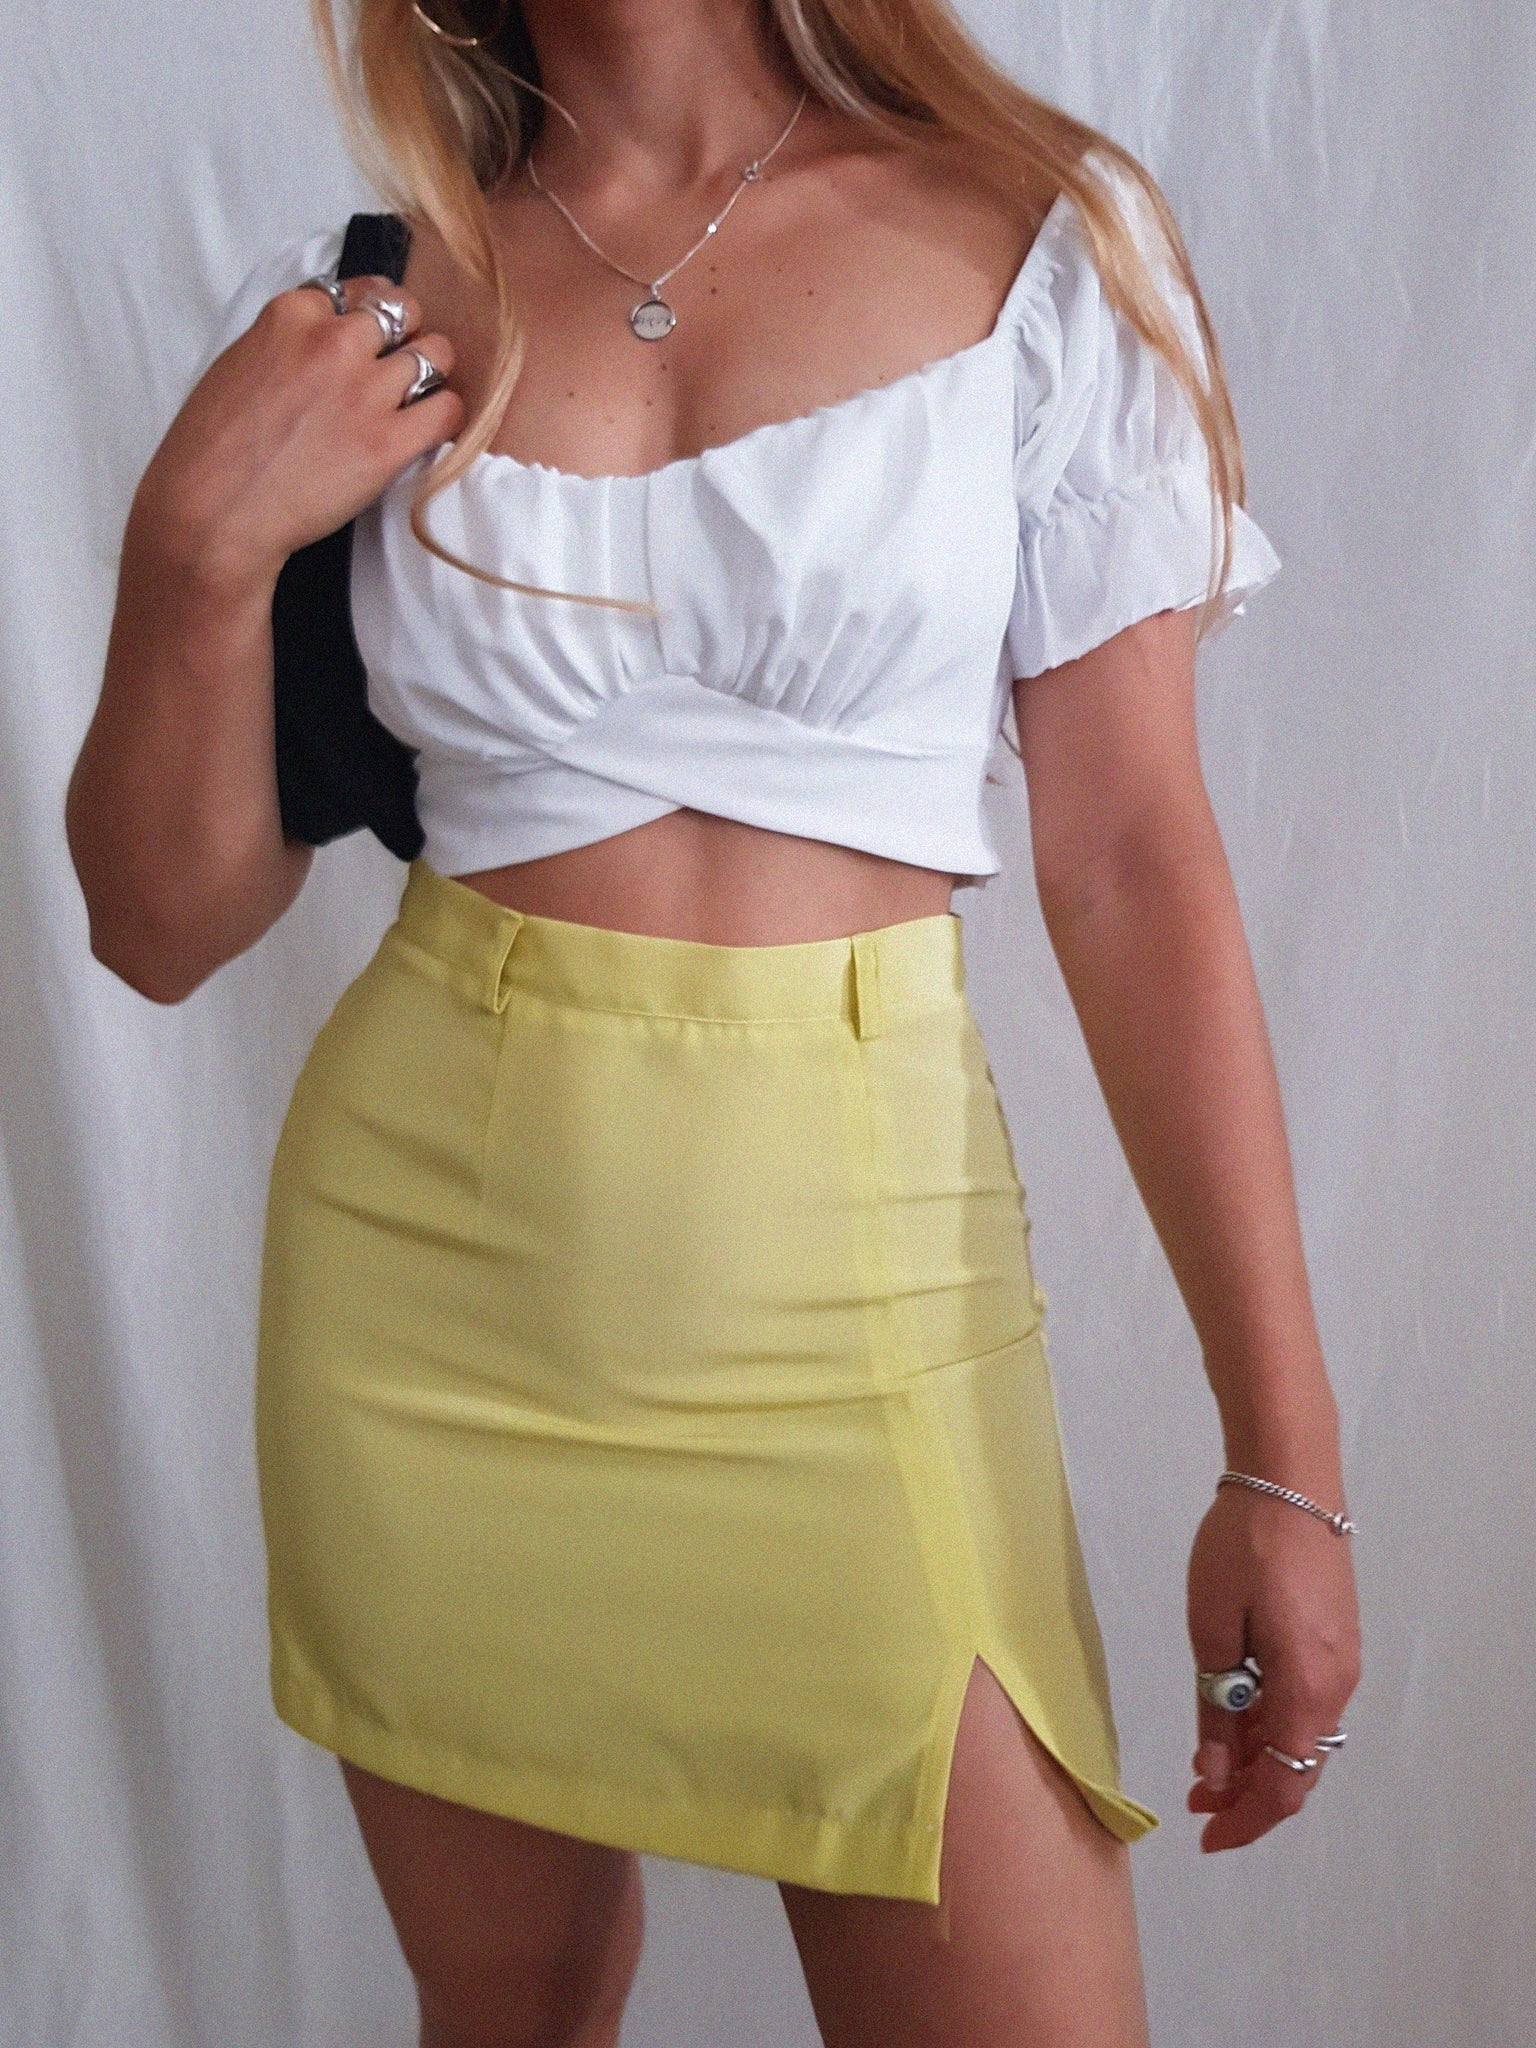 YELLOW CUTY SKIRT